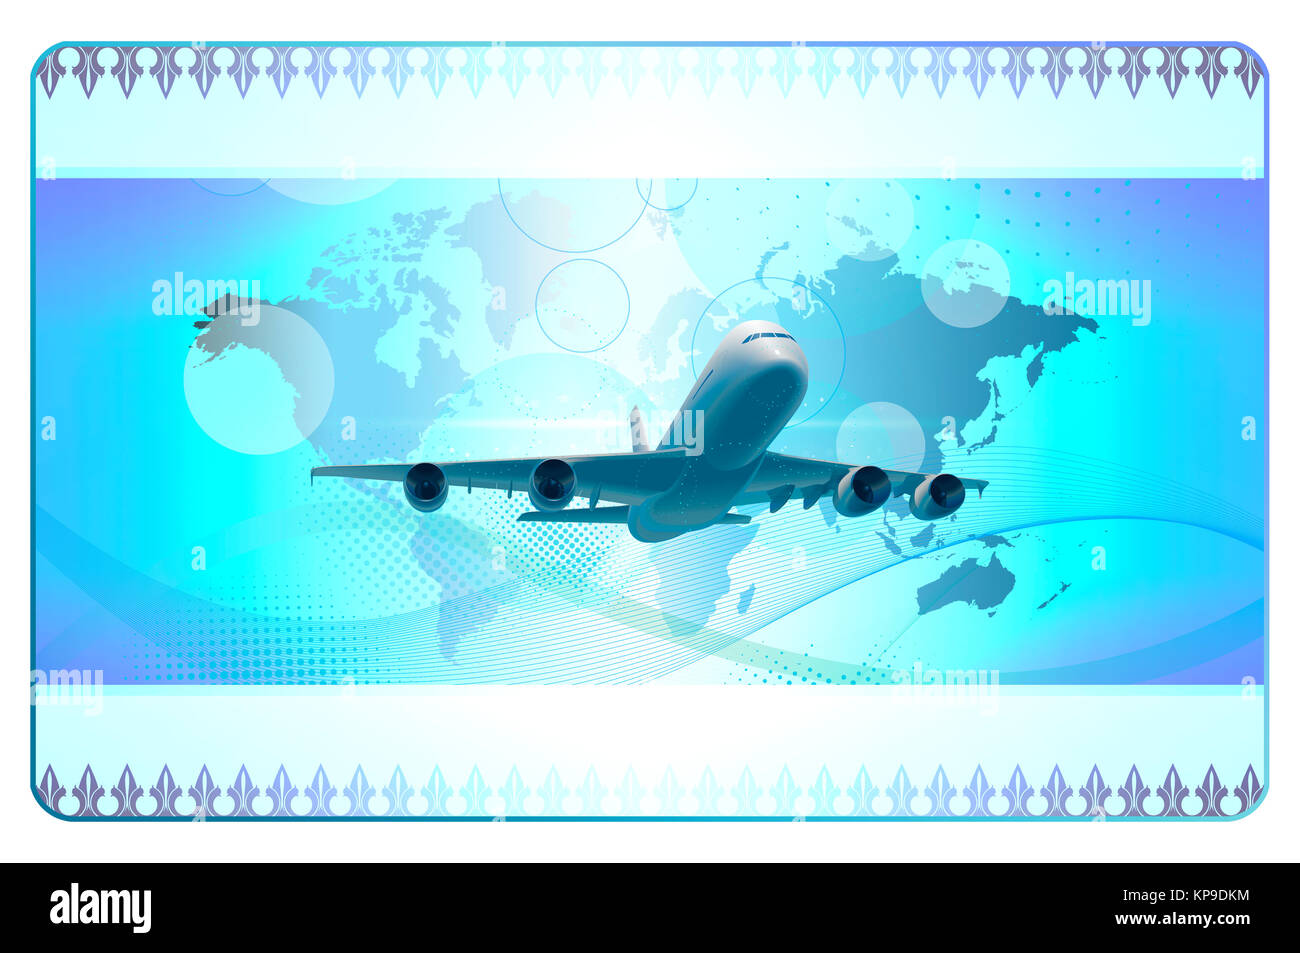 Futuristic blue background with airplane,world map and abstract ...